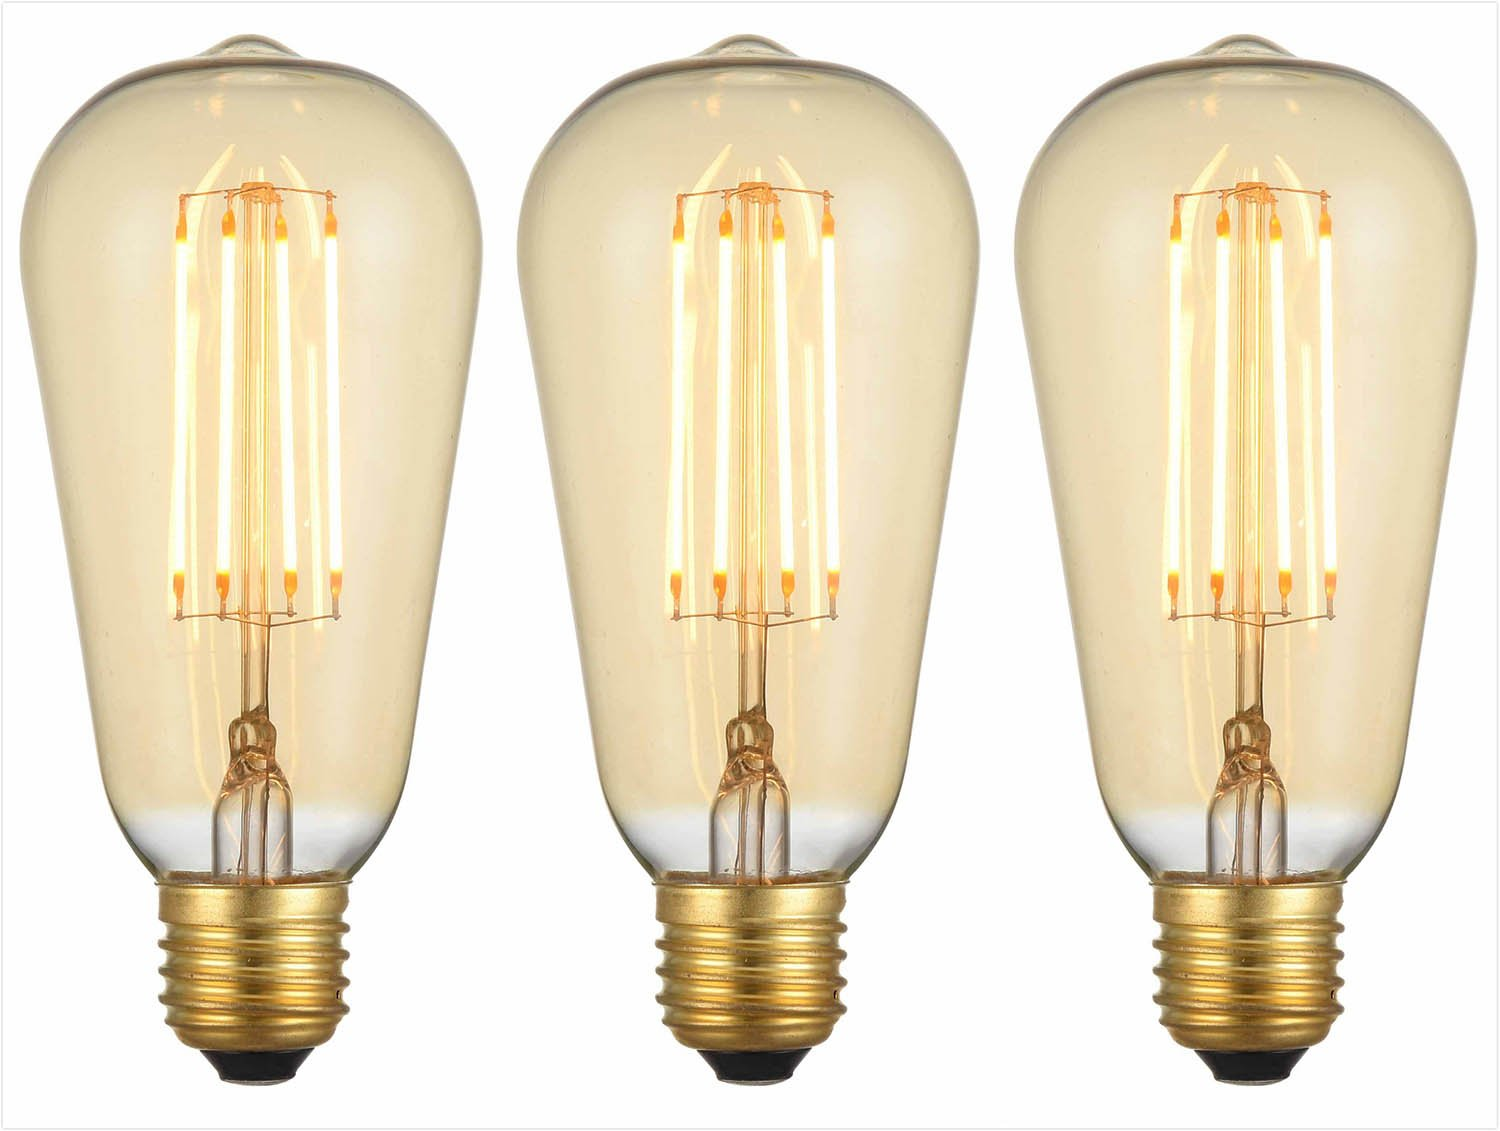 Squirrel cage Filament Old Fashioned Edison Vintage Light Bulb 60W E27 Screw INT/® Pack of 6